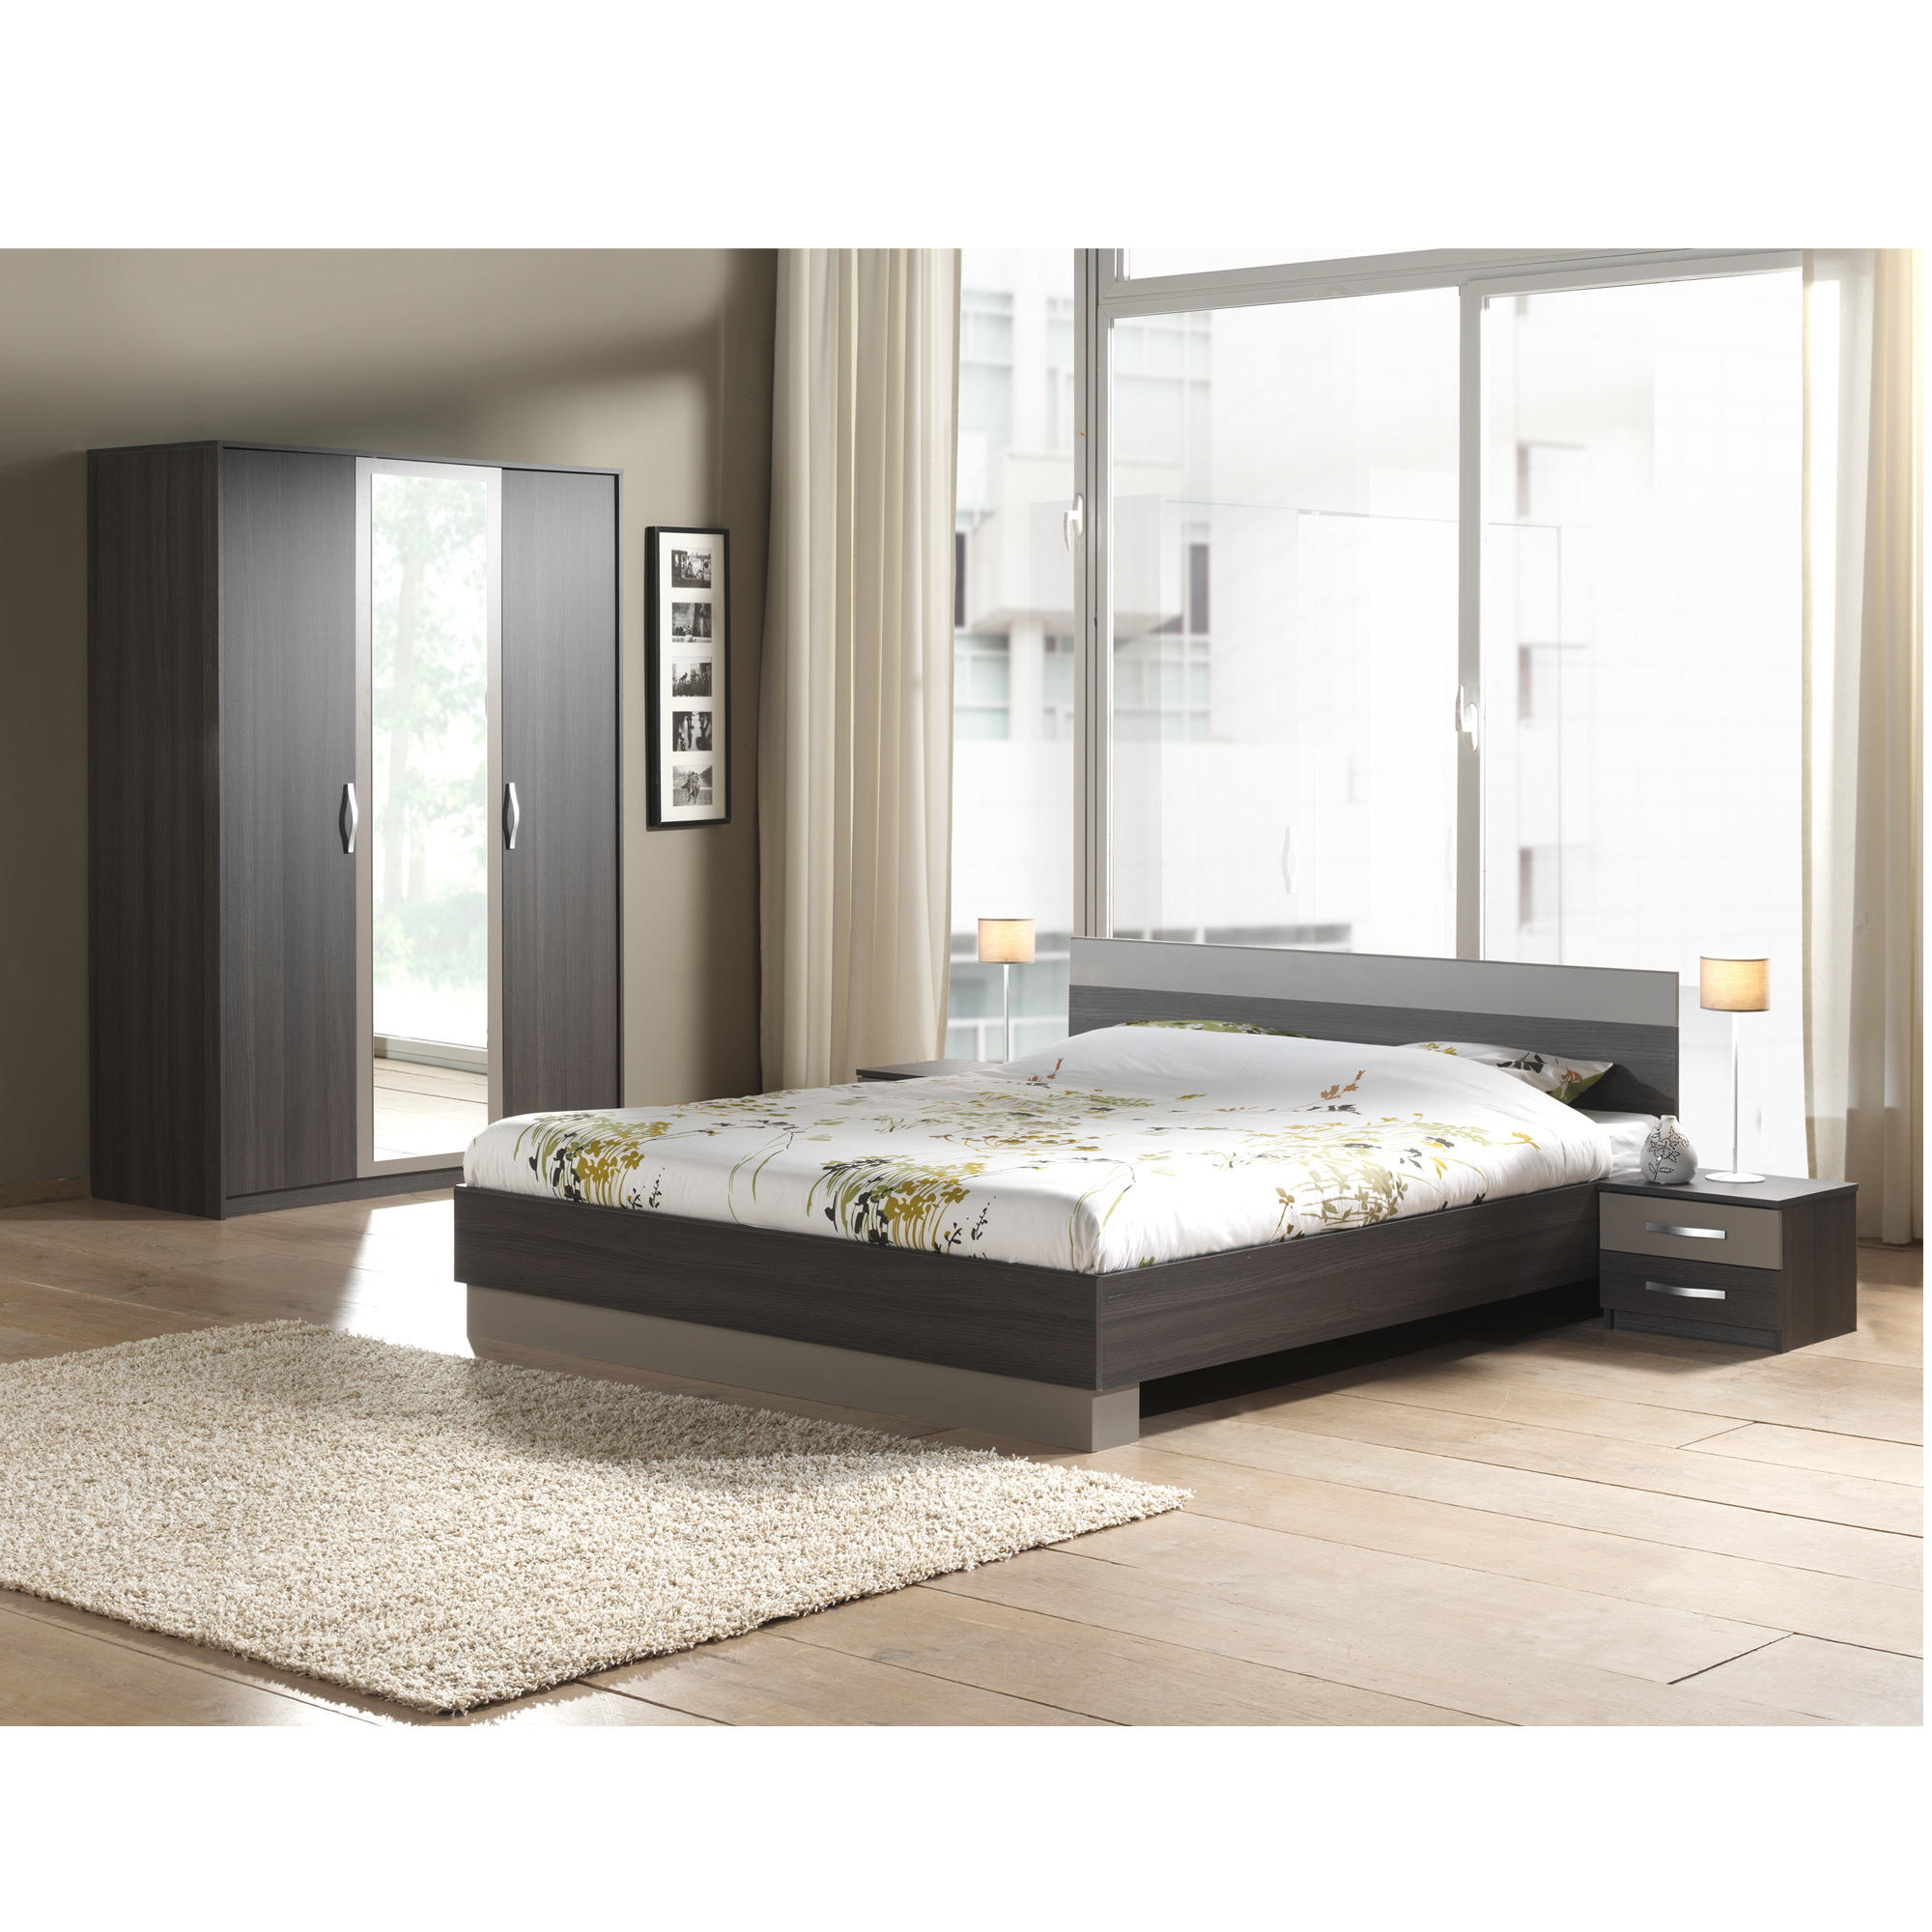 qu 39 est ce qu 39 un matelas king size unigro. Black Bedroom Furniture Sets. Home Design Ideas